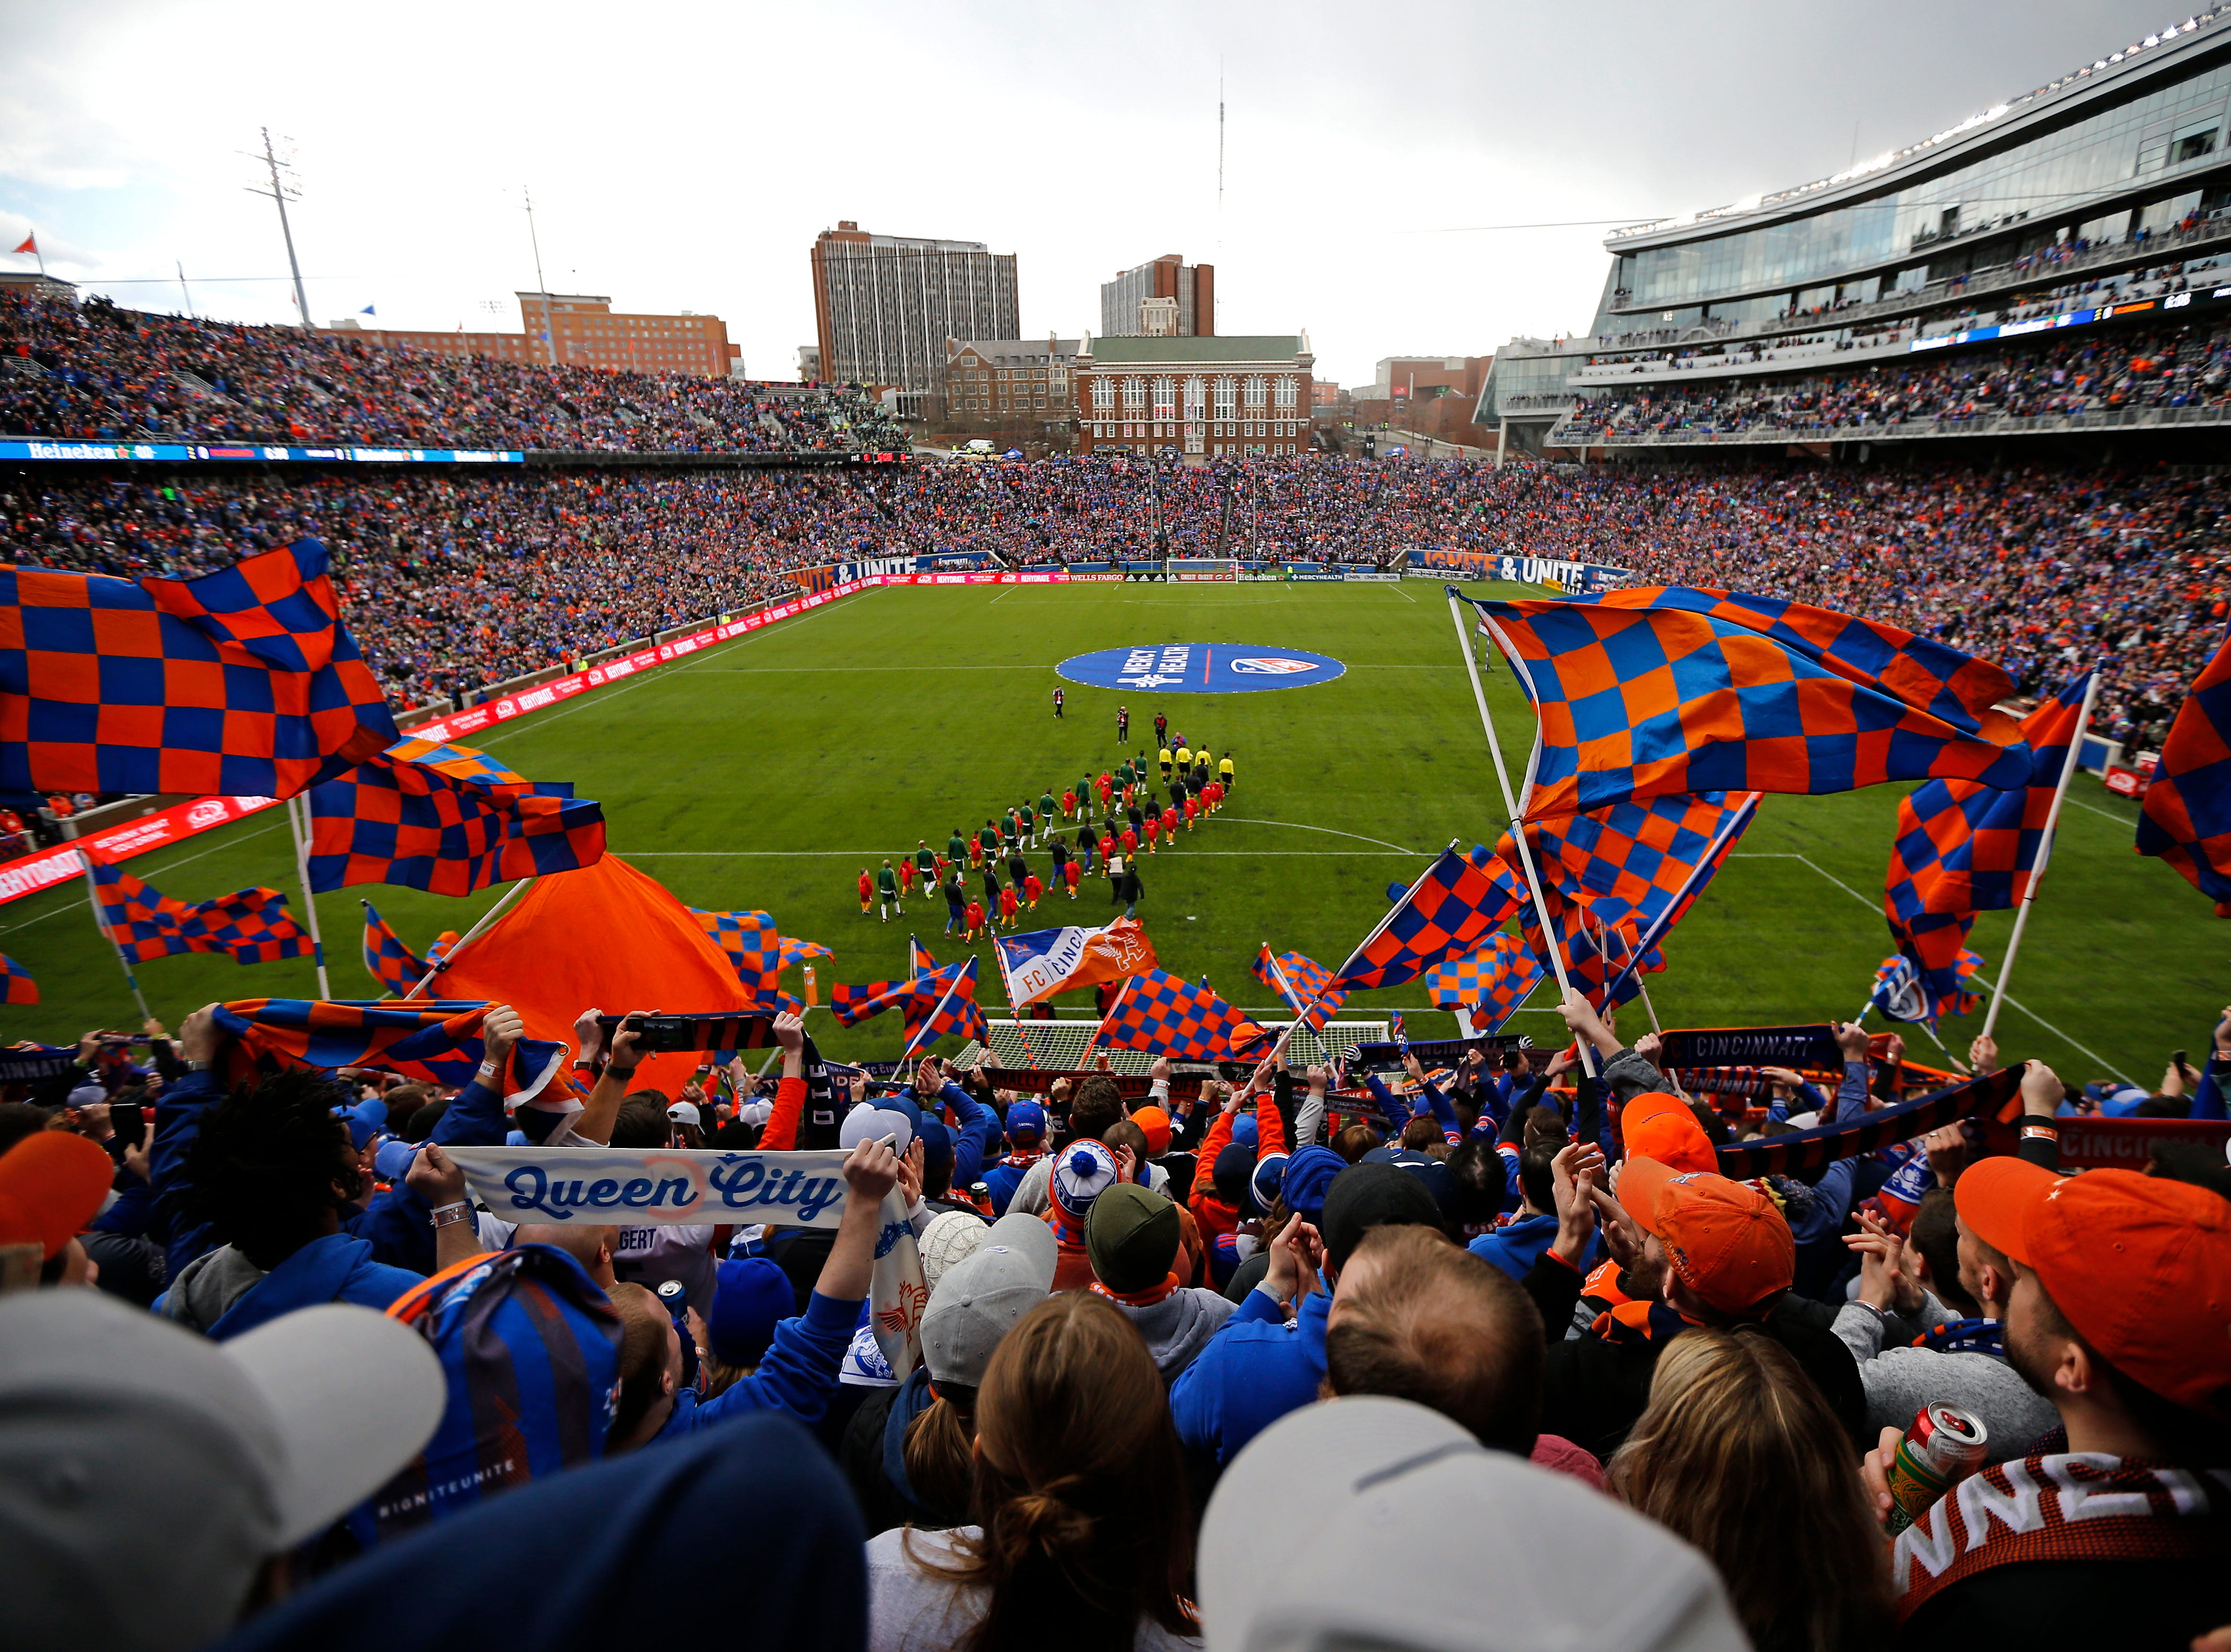 The Bailey cheers and waves flags as both teams take the field before the the first half of the MLS match between FC Cincinnati and the Portland Timbers at Nippert Stadium in Cincinnati on Sunday, March 17, 2019. FC Cincinnati led 1-0 at halftime.